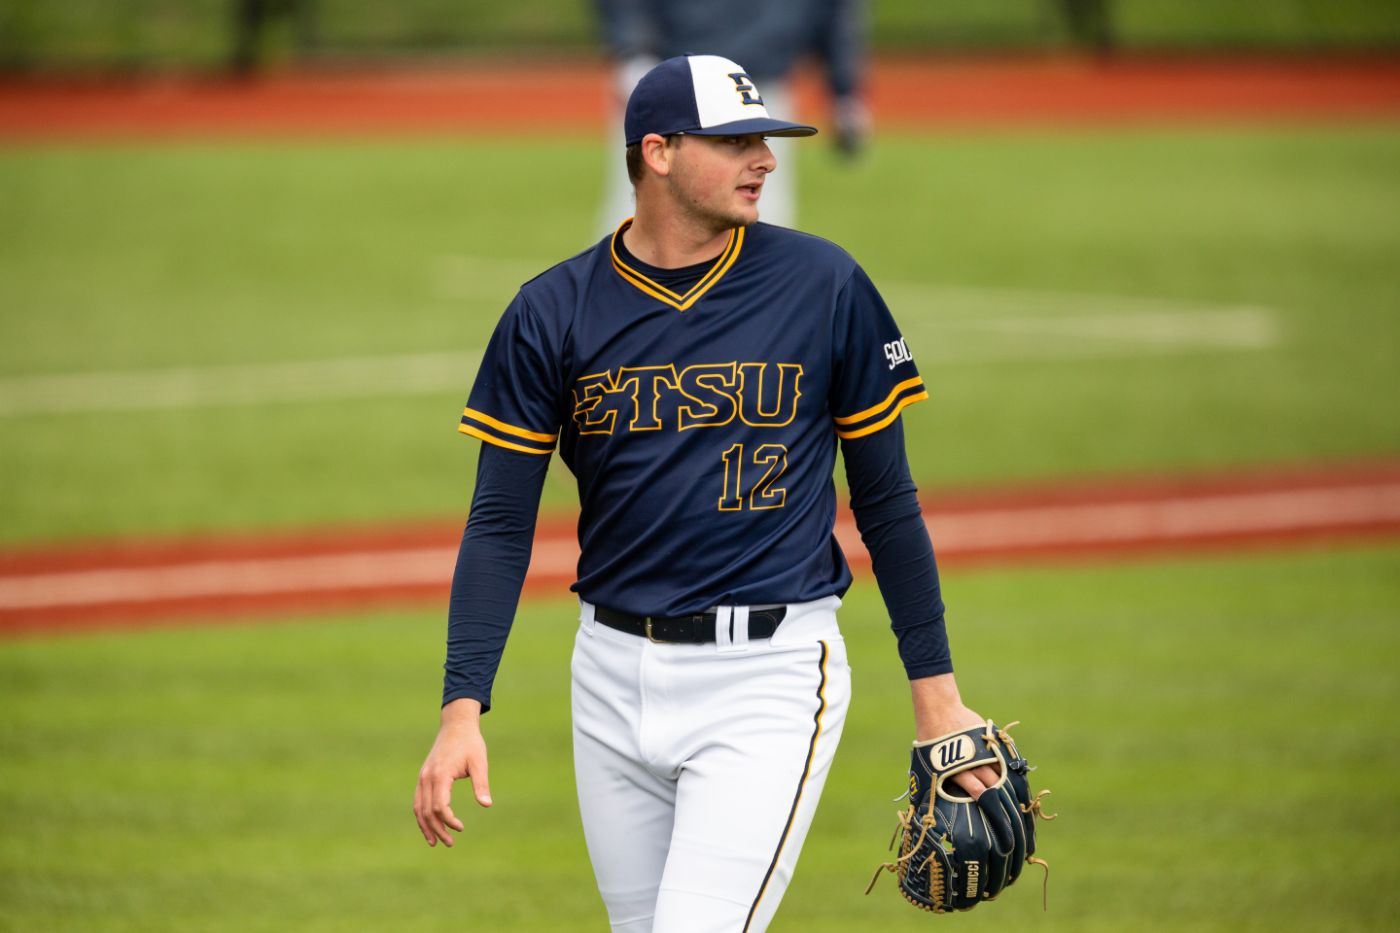 Bucs double up Furman to take road series